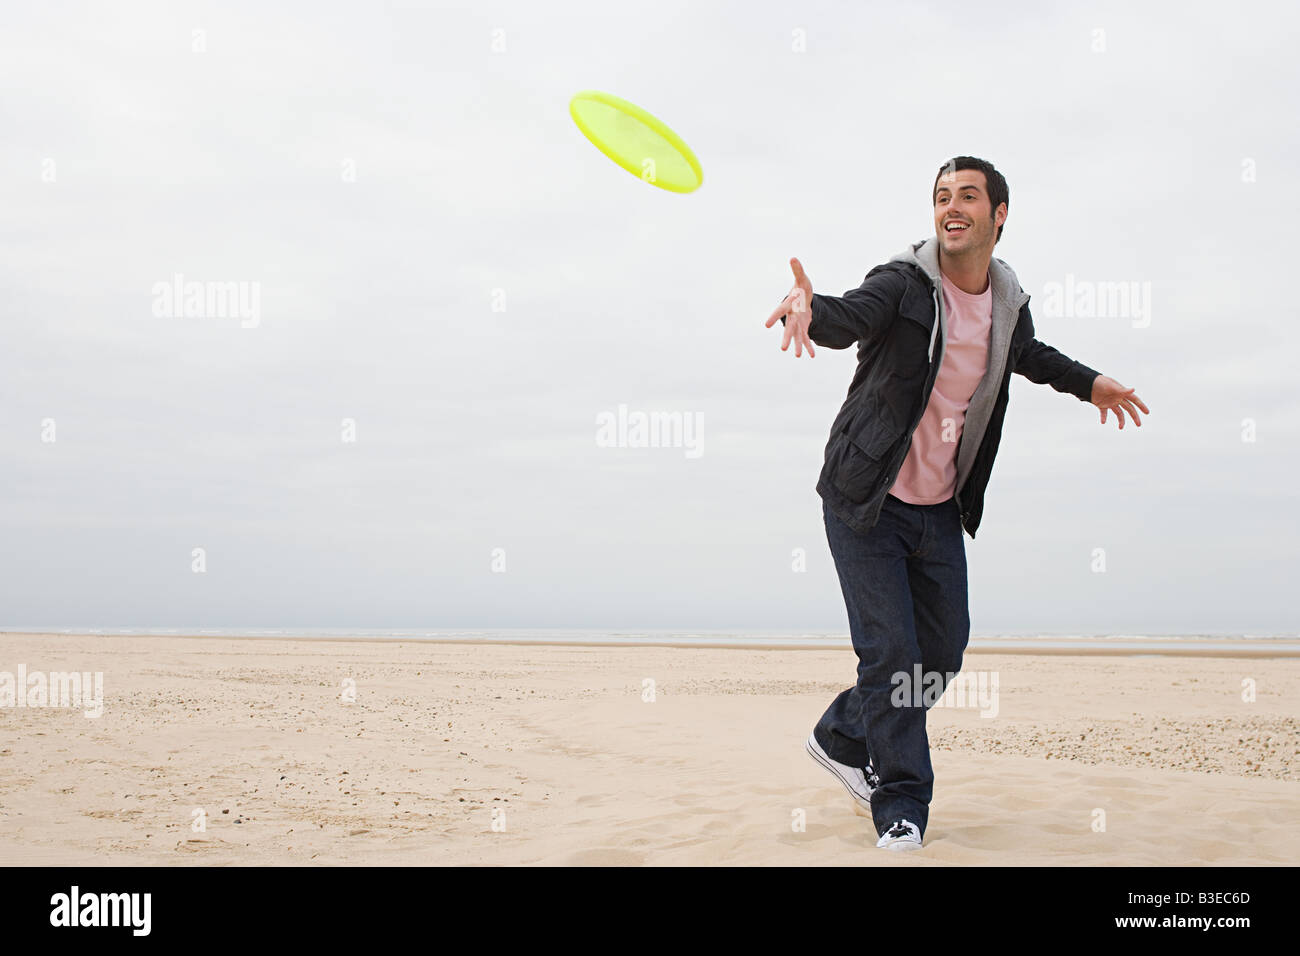 Man throwing a flying disc - Stock Image